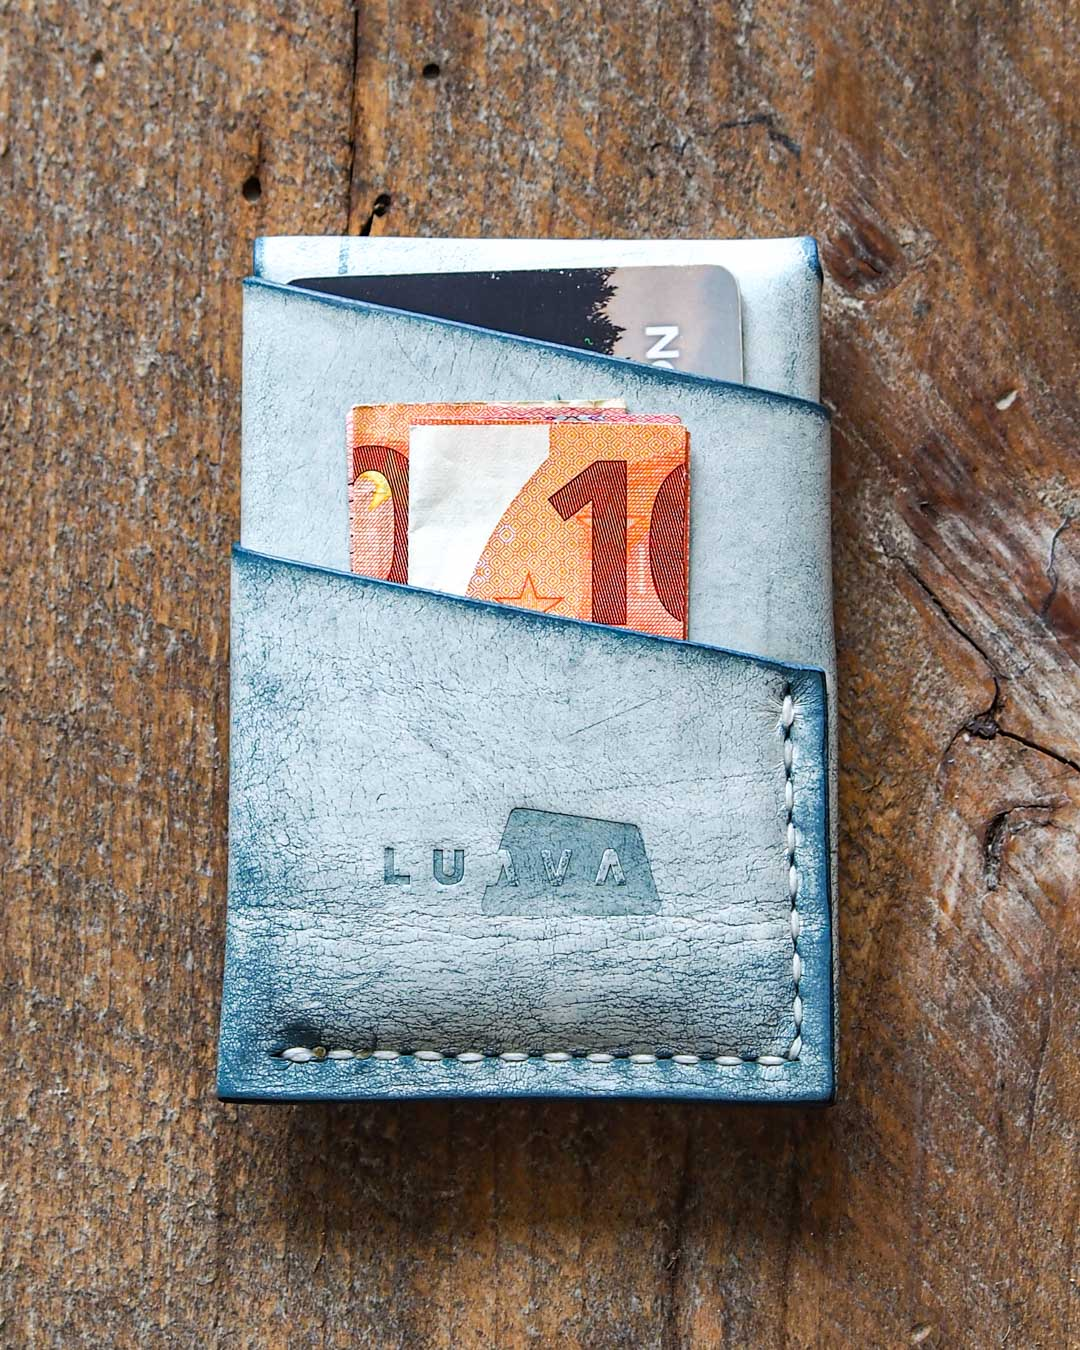 Luava handcrafted leather overfold wallet ghost ocean conceria la bretagna cardholder card holder handmade in finland back closed in use